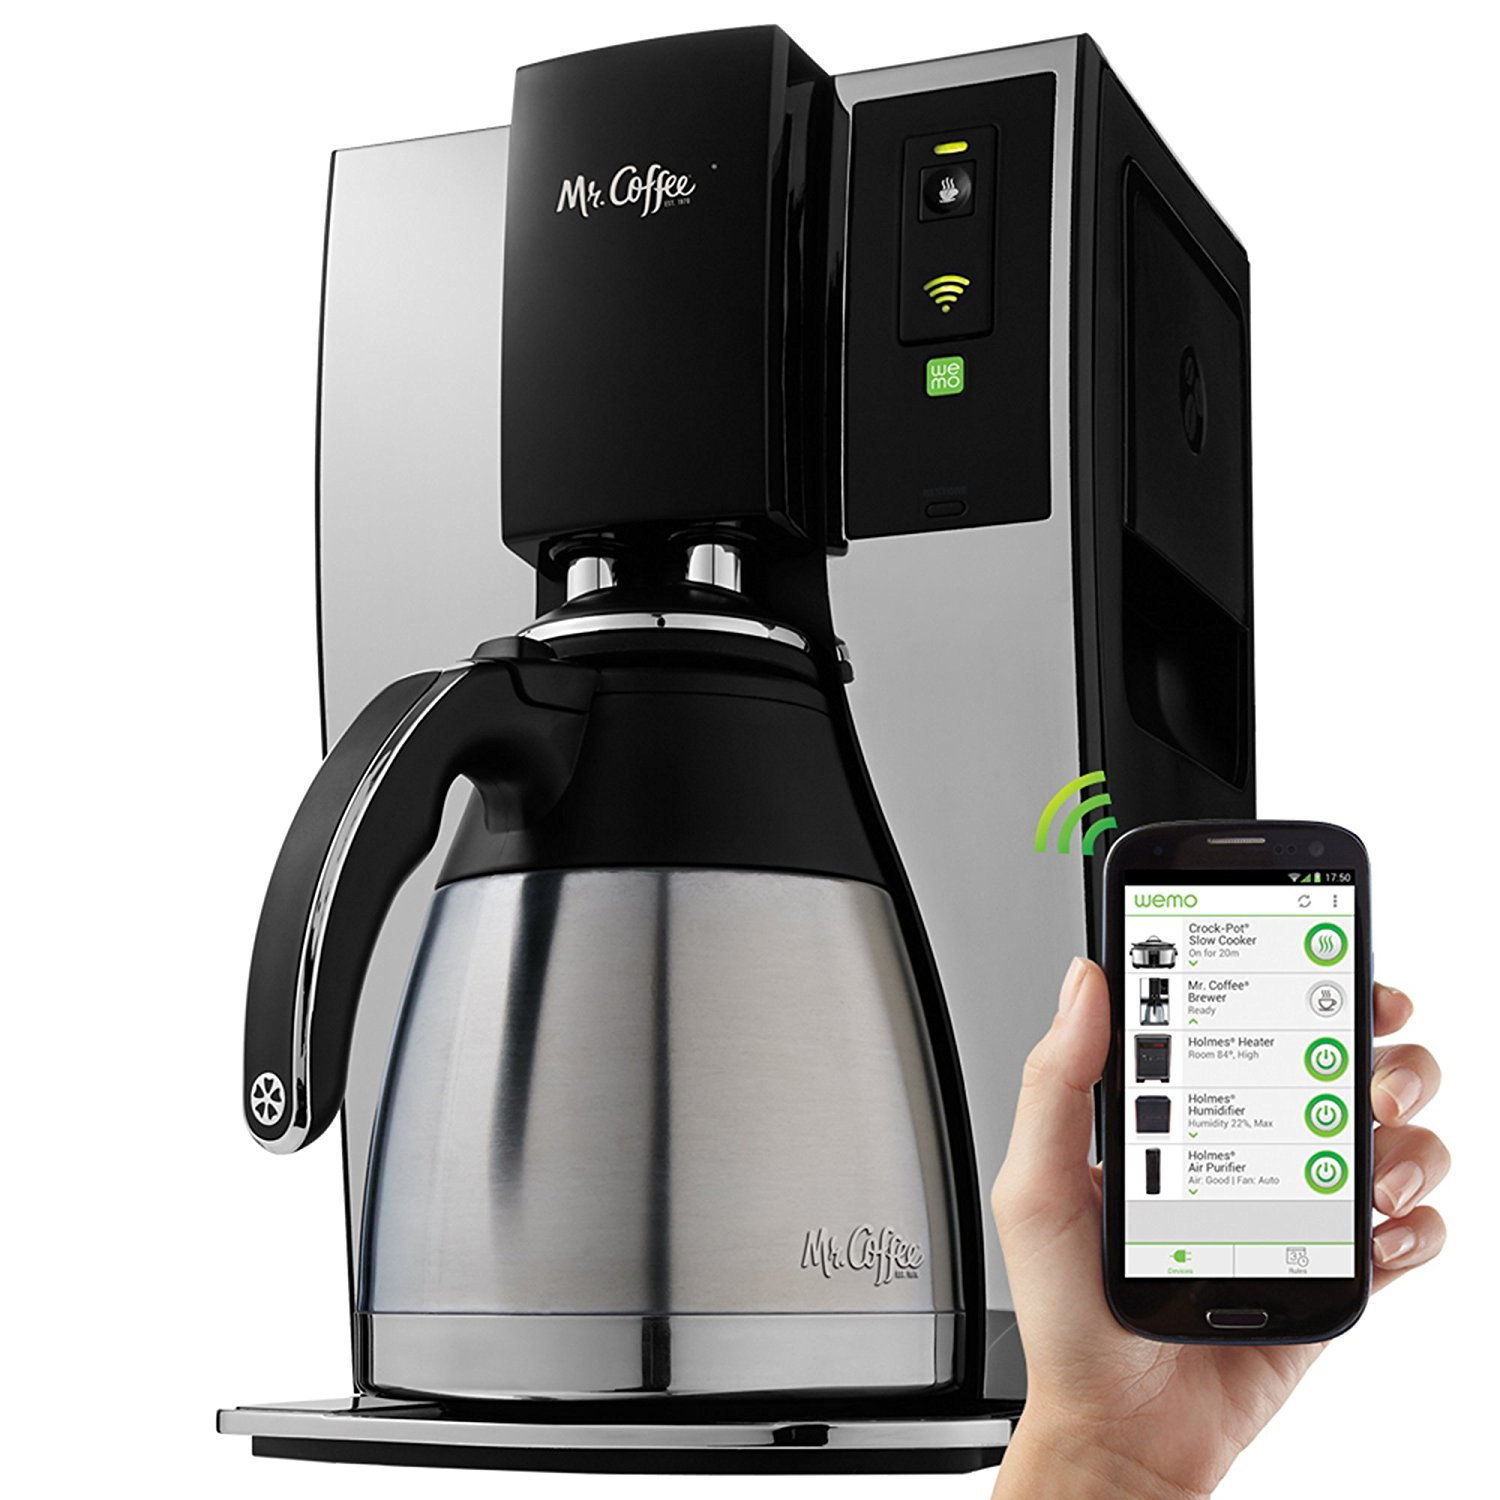 Coffee Maker Terbaik 2017 : 20 Best Smart Home Devices of 2017 Phandroid